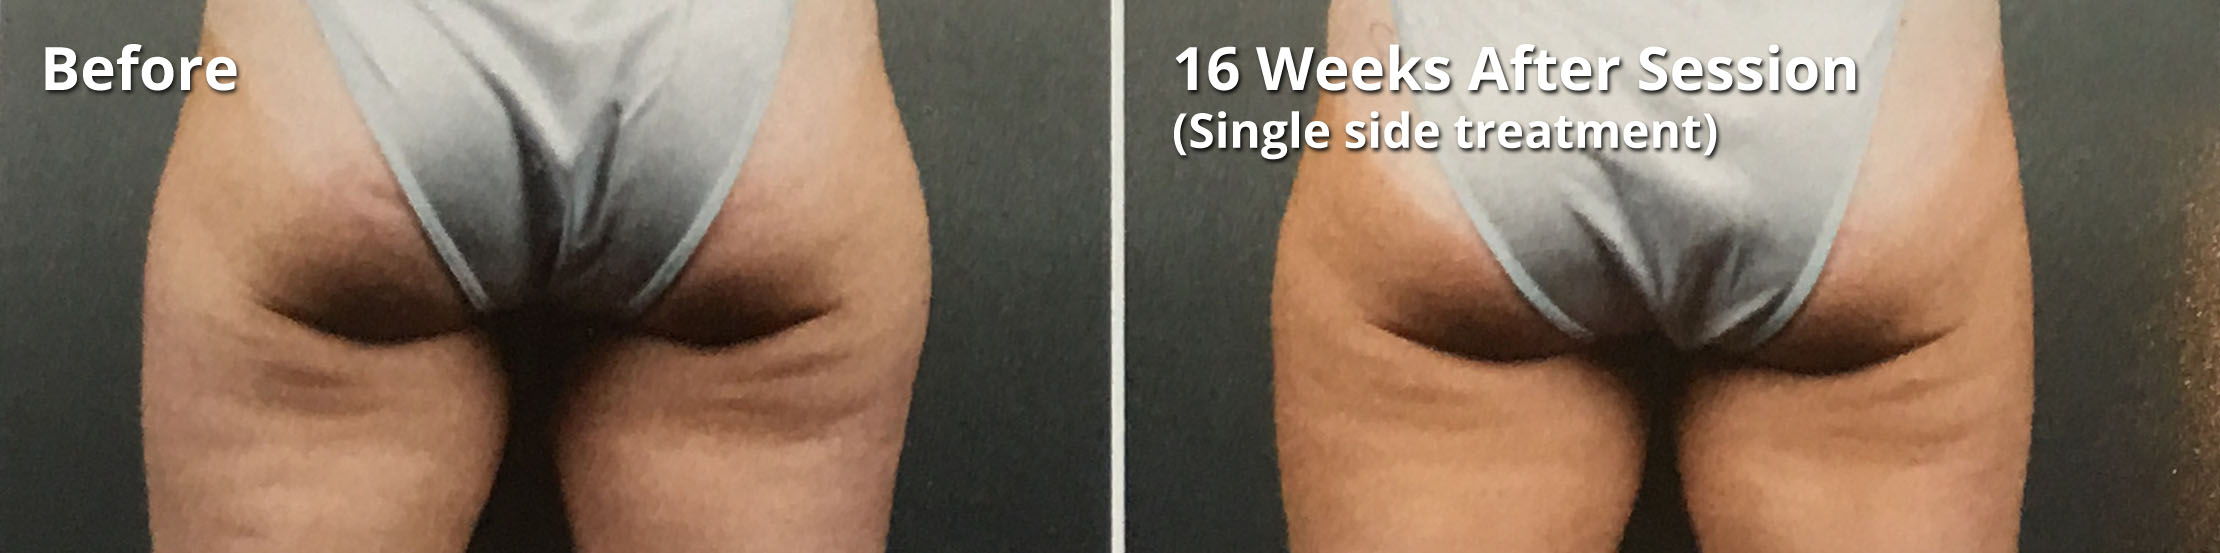 Coolsculpting - 16 week treatment - before and after procedure